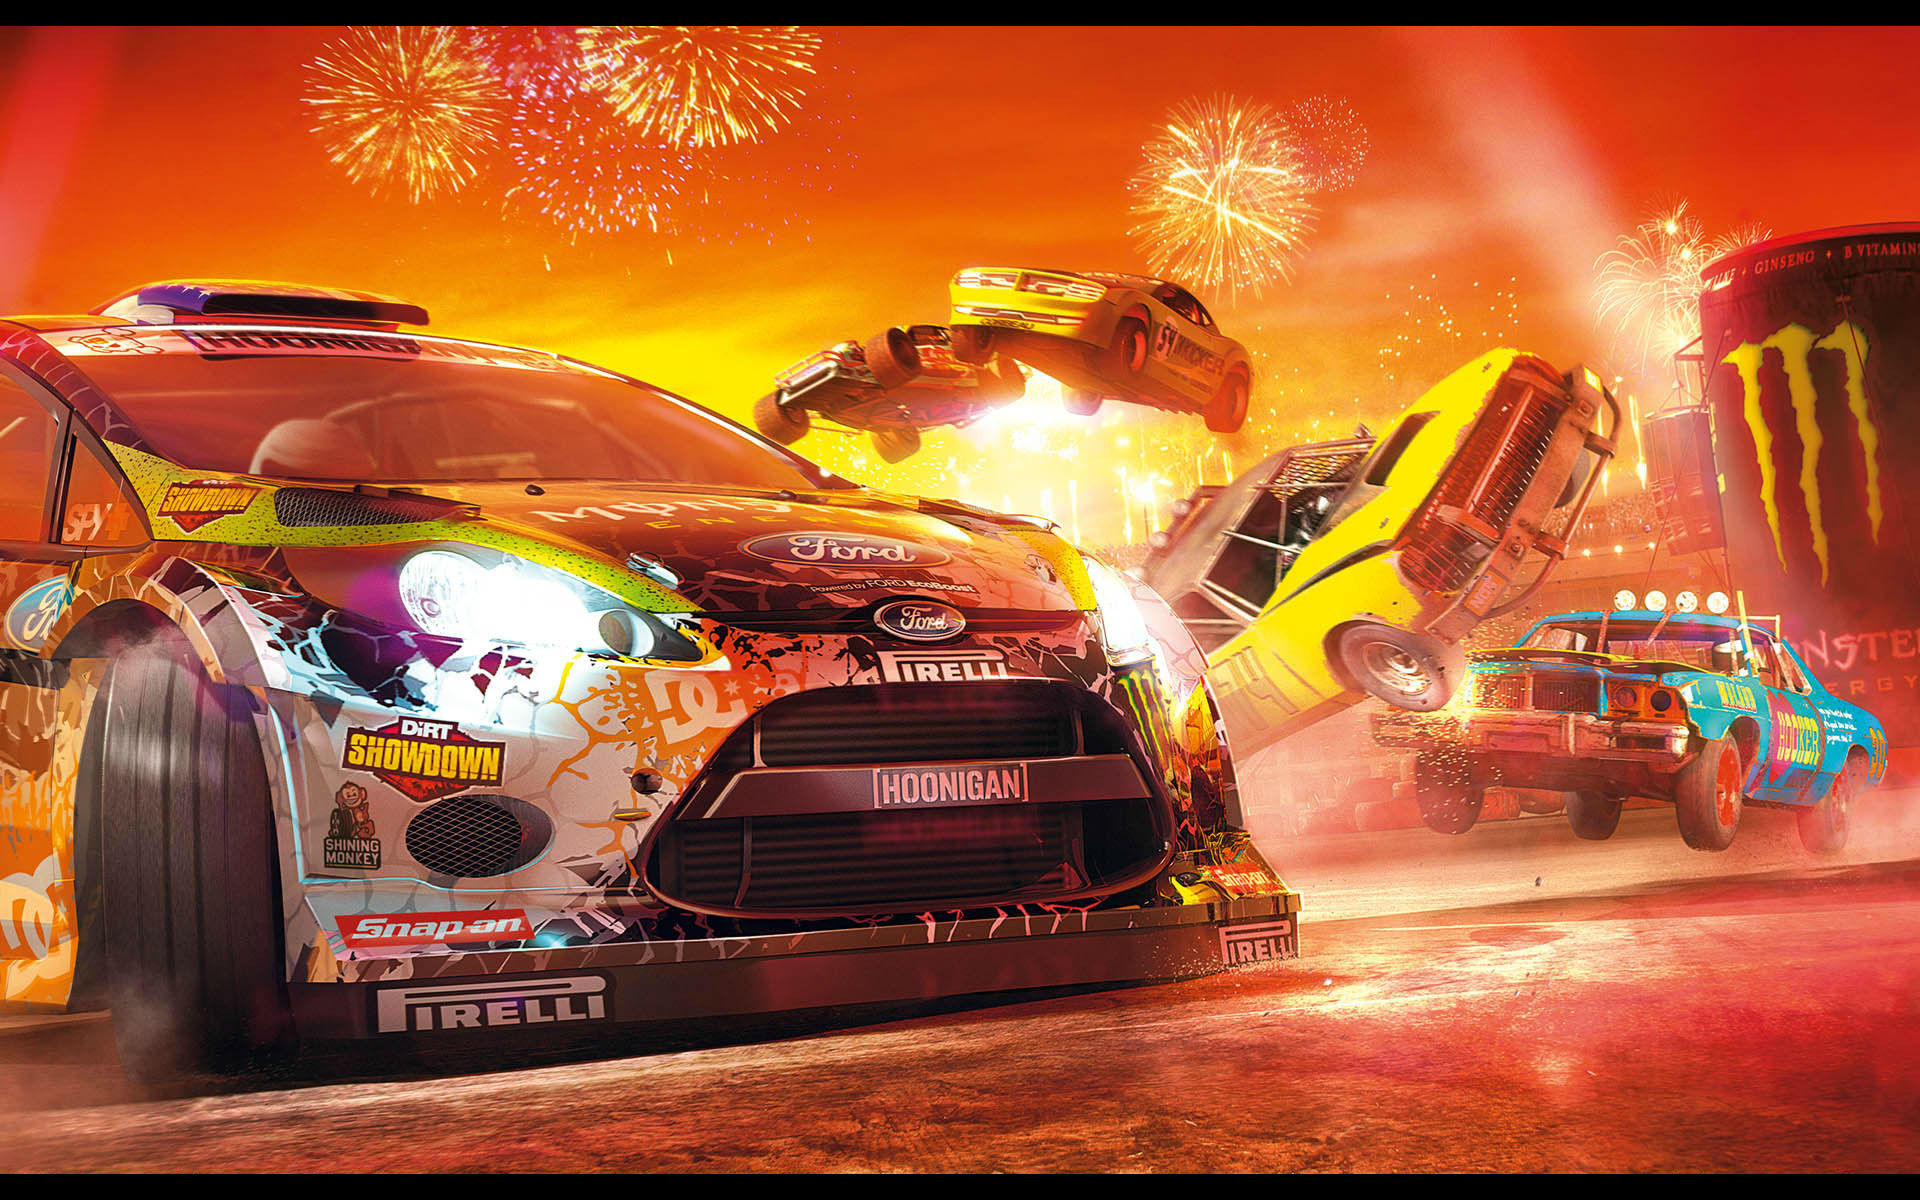 Cool Background Wallpapers 3d 6 Dirt Showdown Hd Wallpapers Background Images